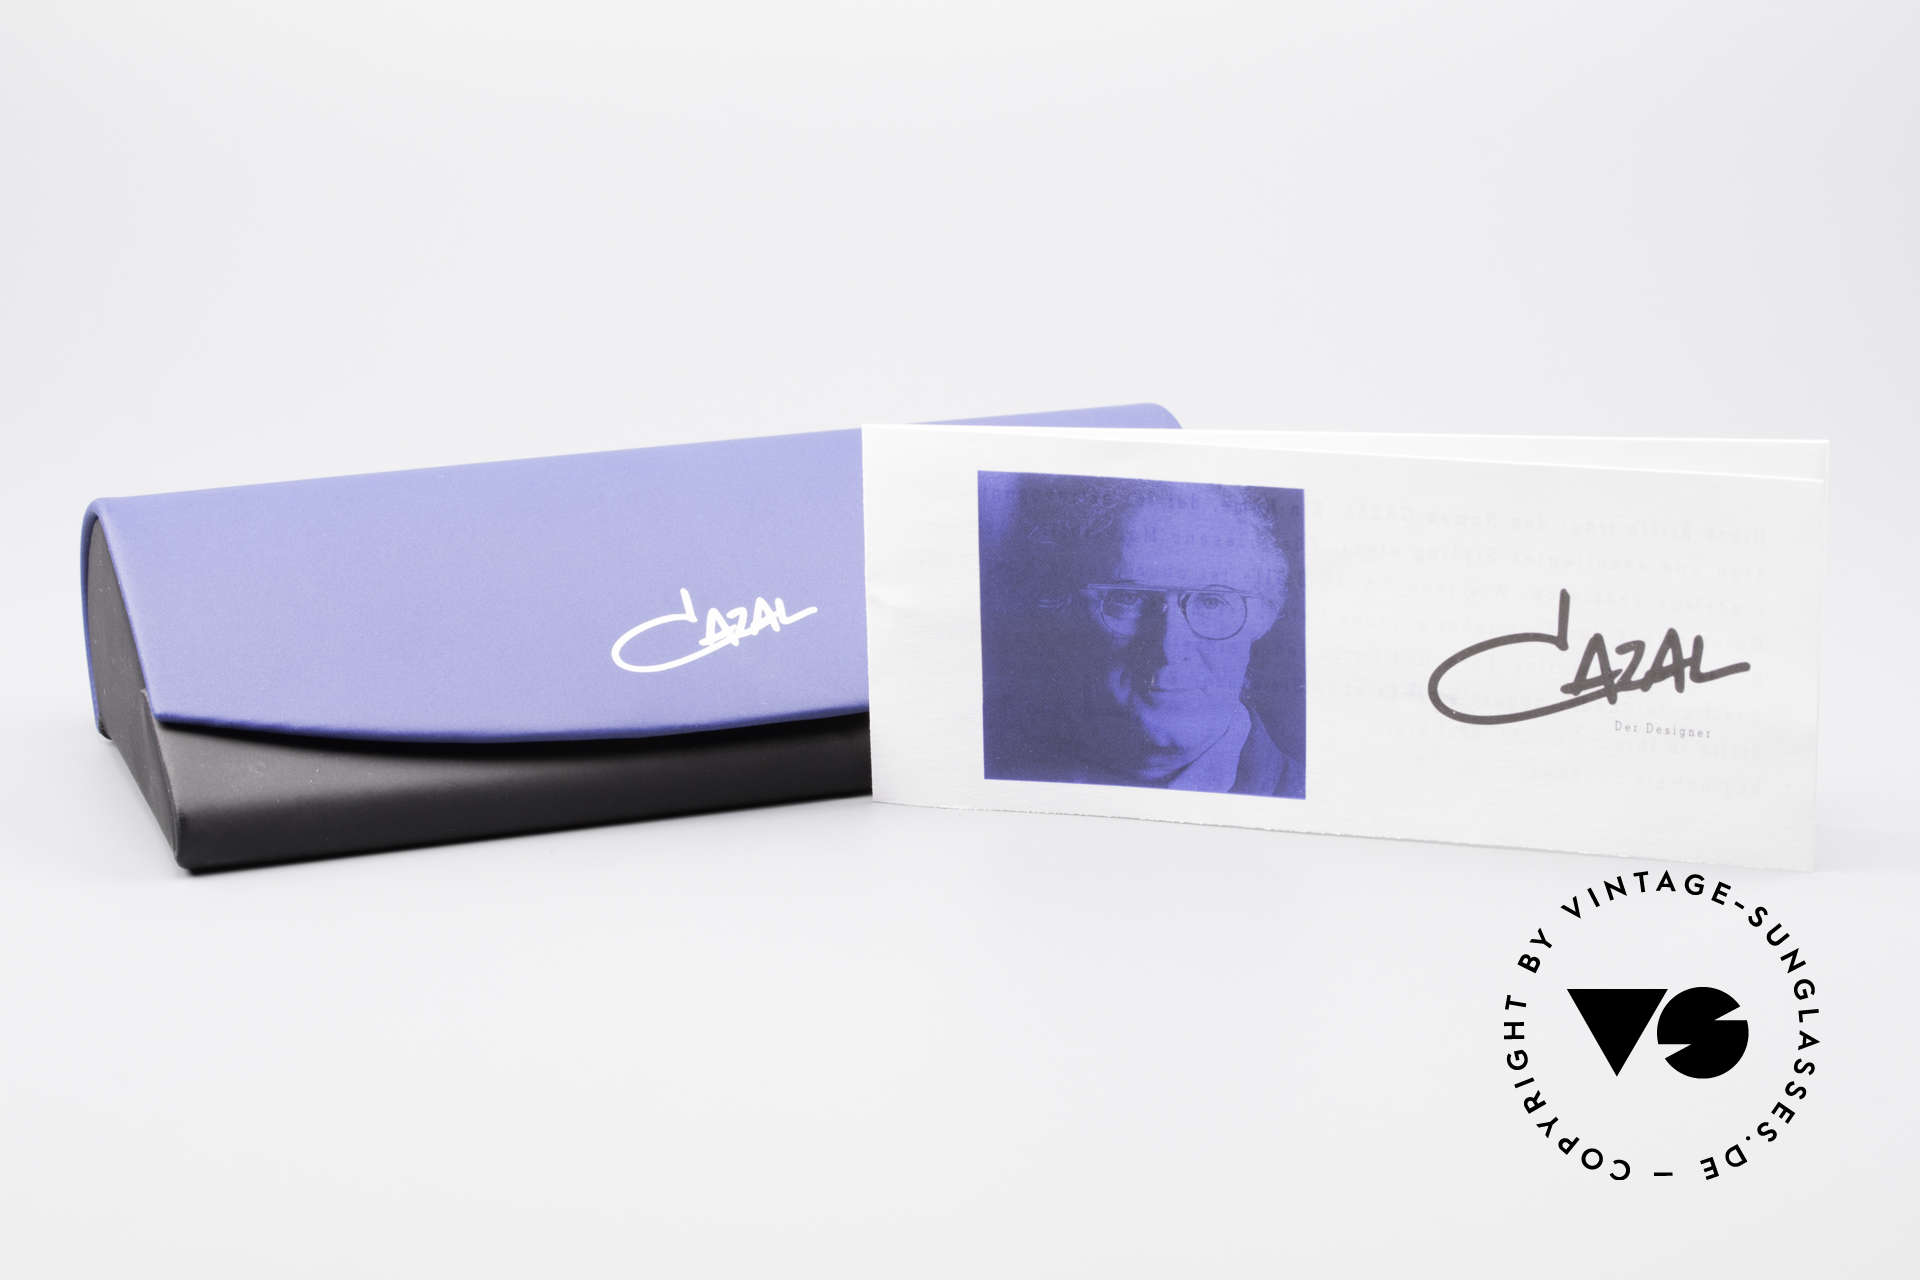 Cazal 758 Original 90s Cazal Sunglasses, NO RETRO shades, but an authentic 20 years old original, Made for Men and Women